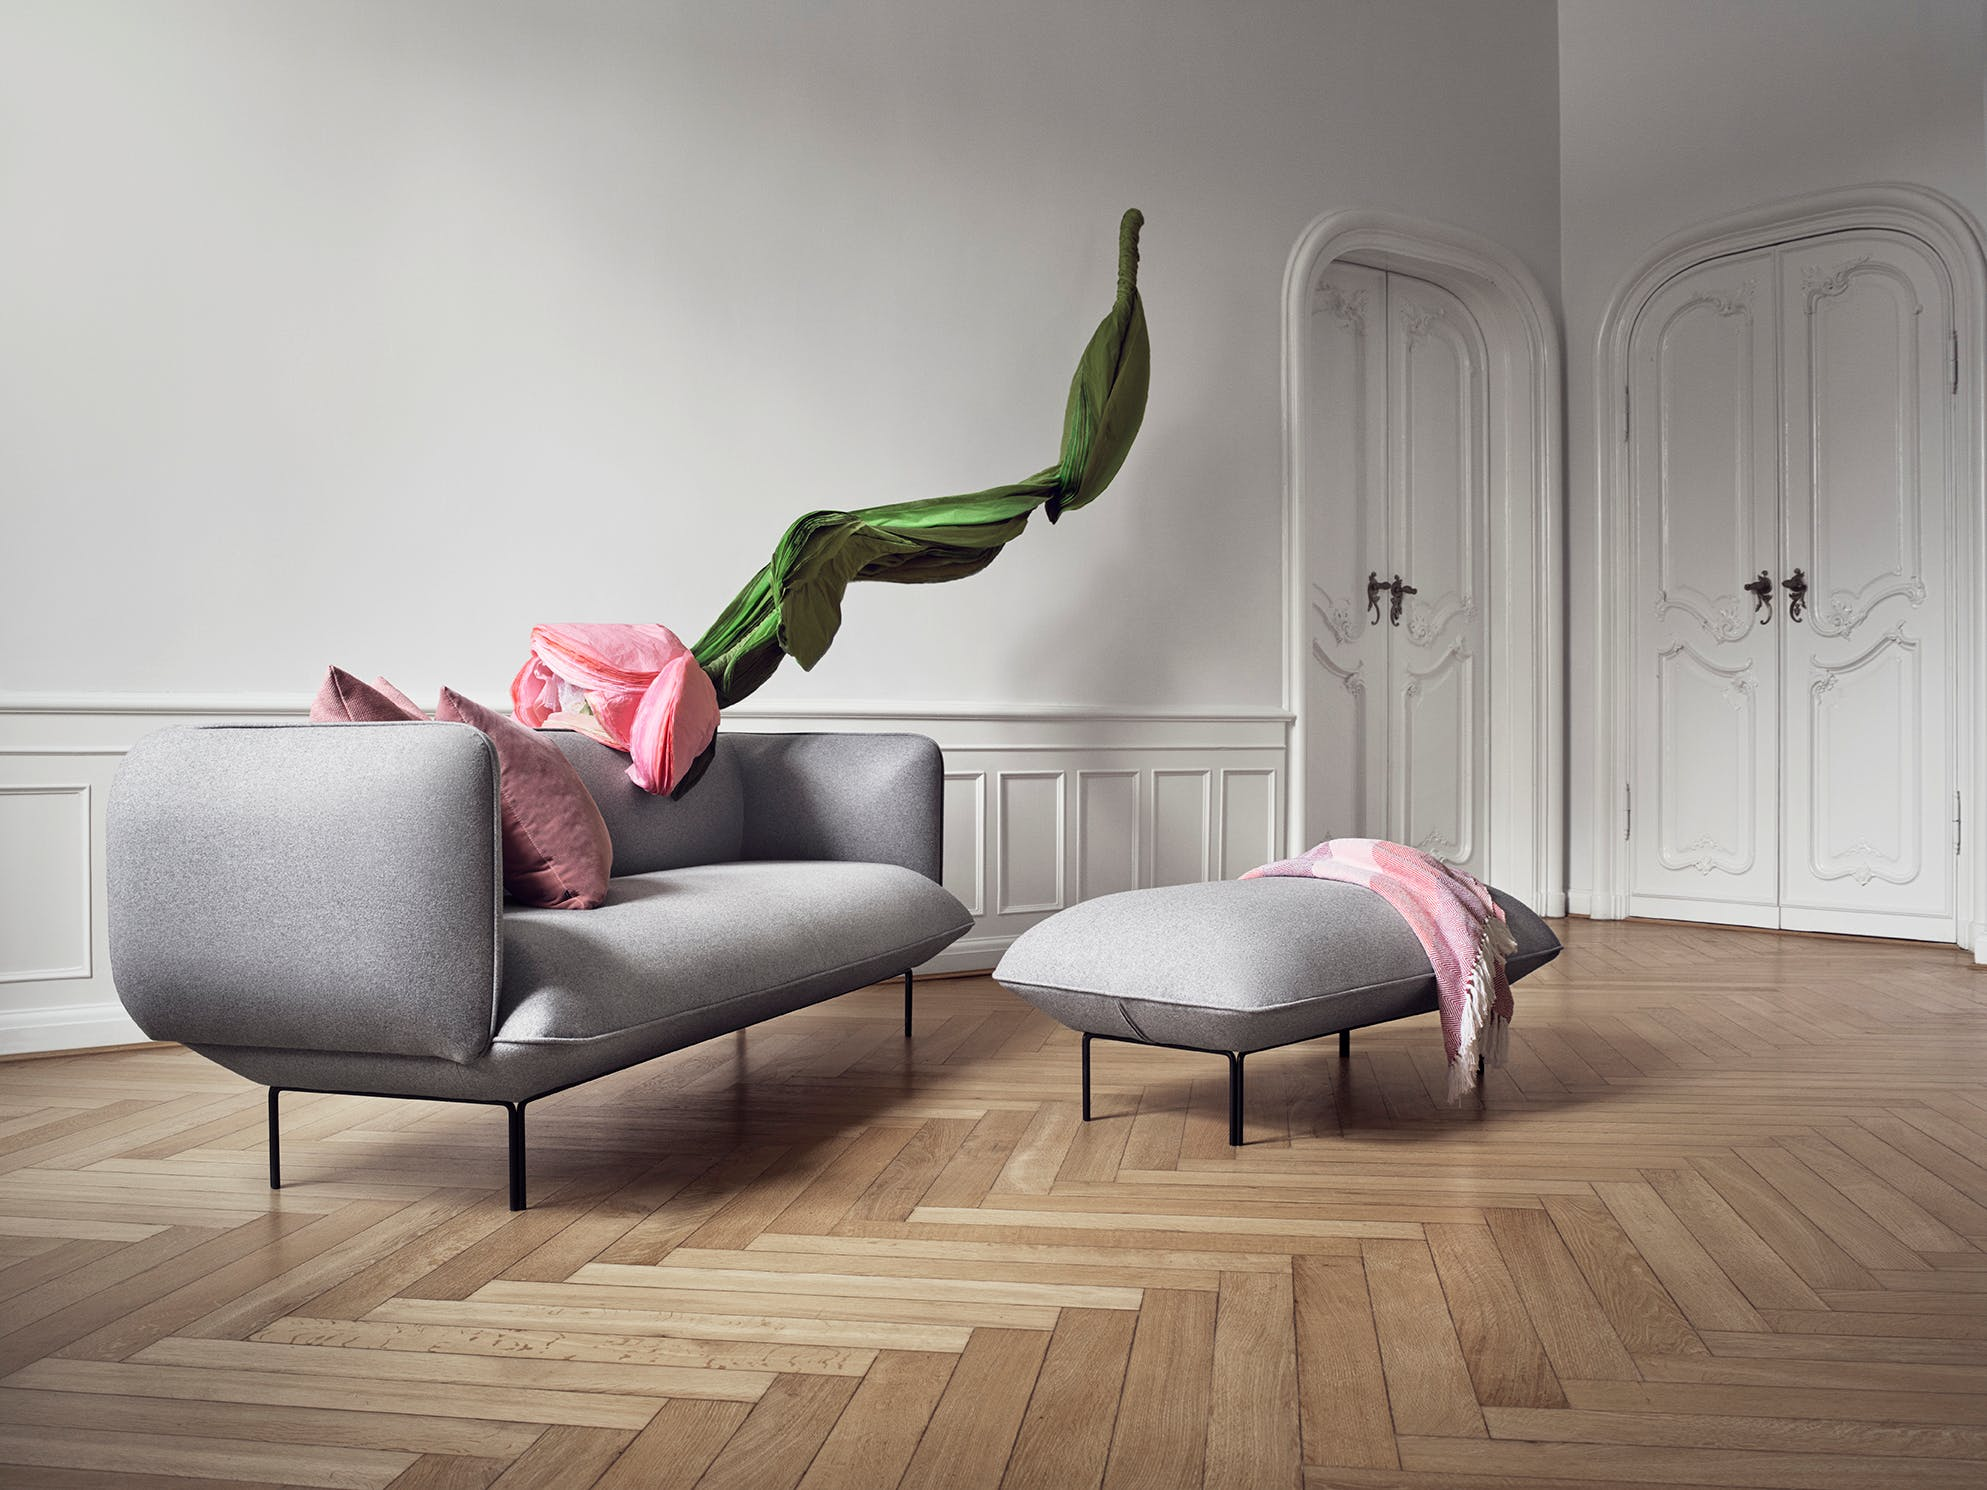 Cloud-sofa-by-bolia-available-at-haute-living